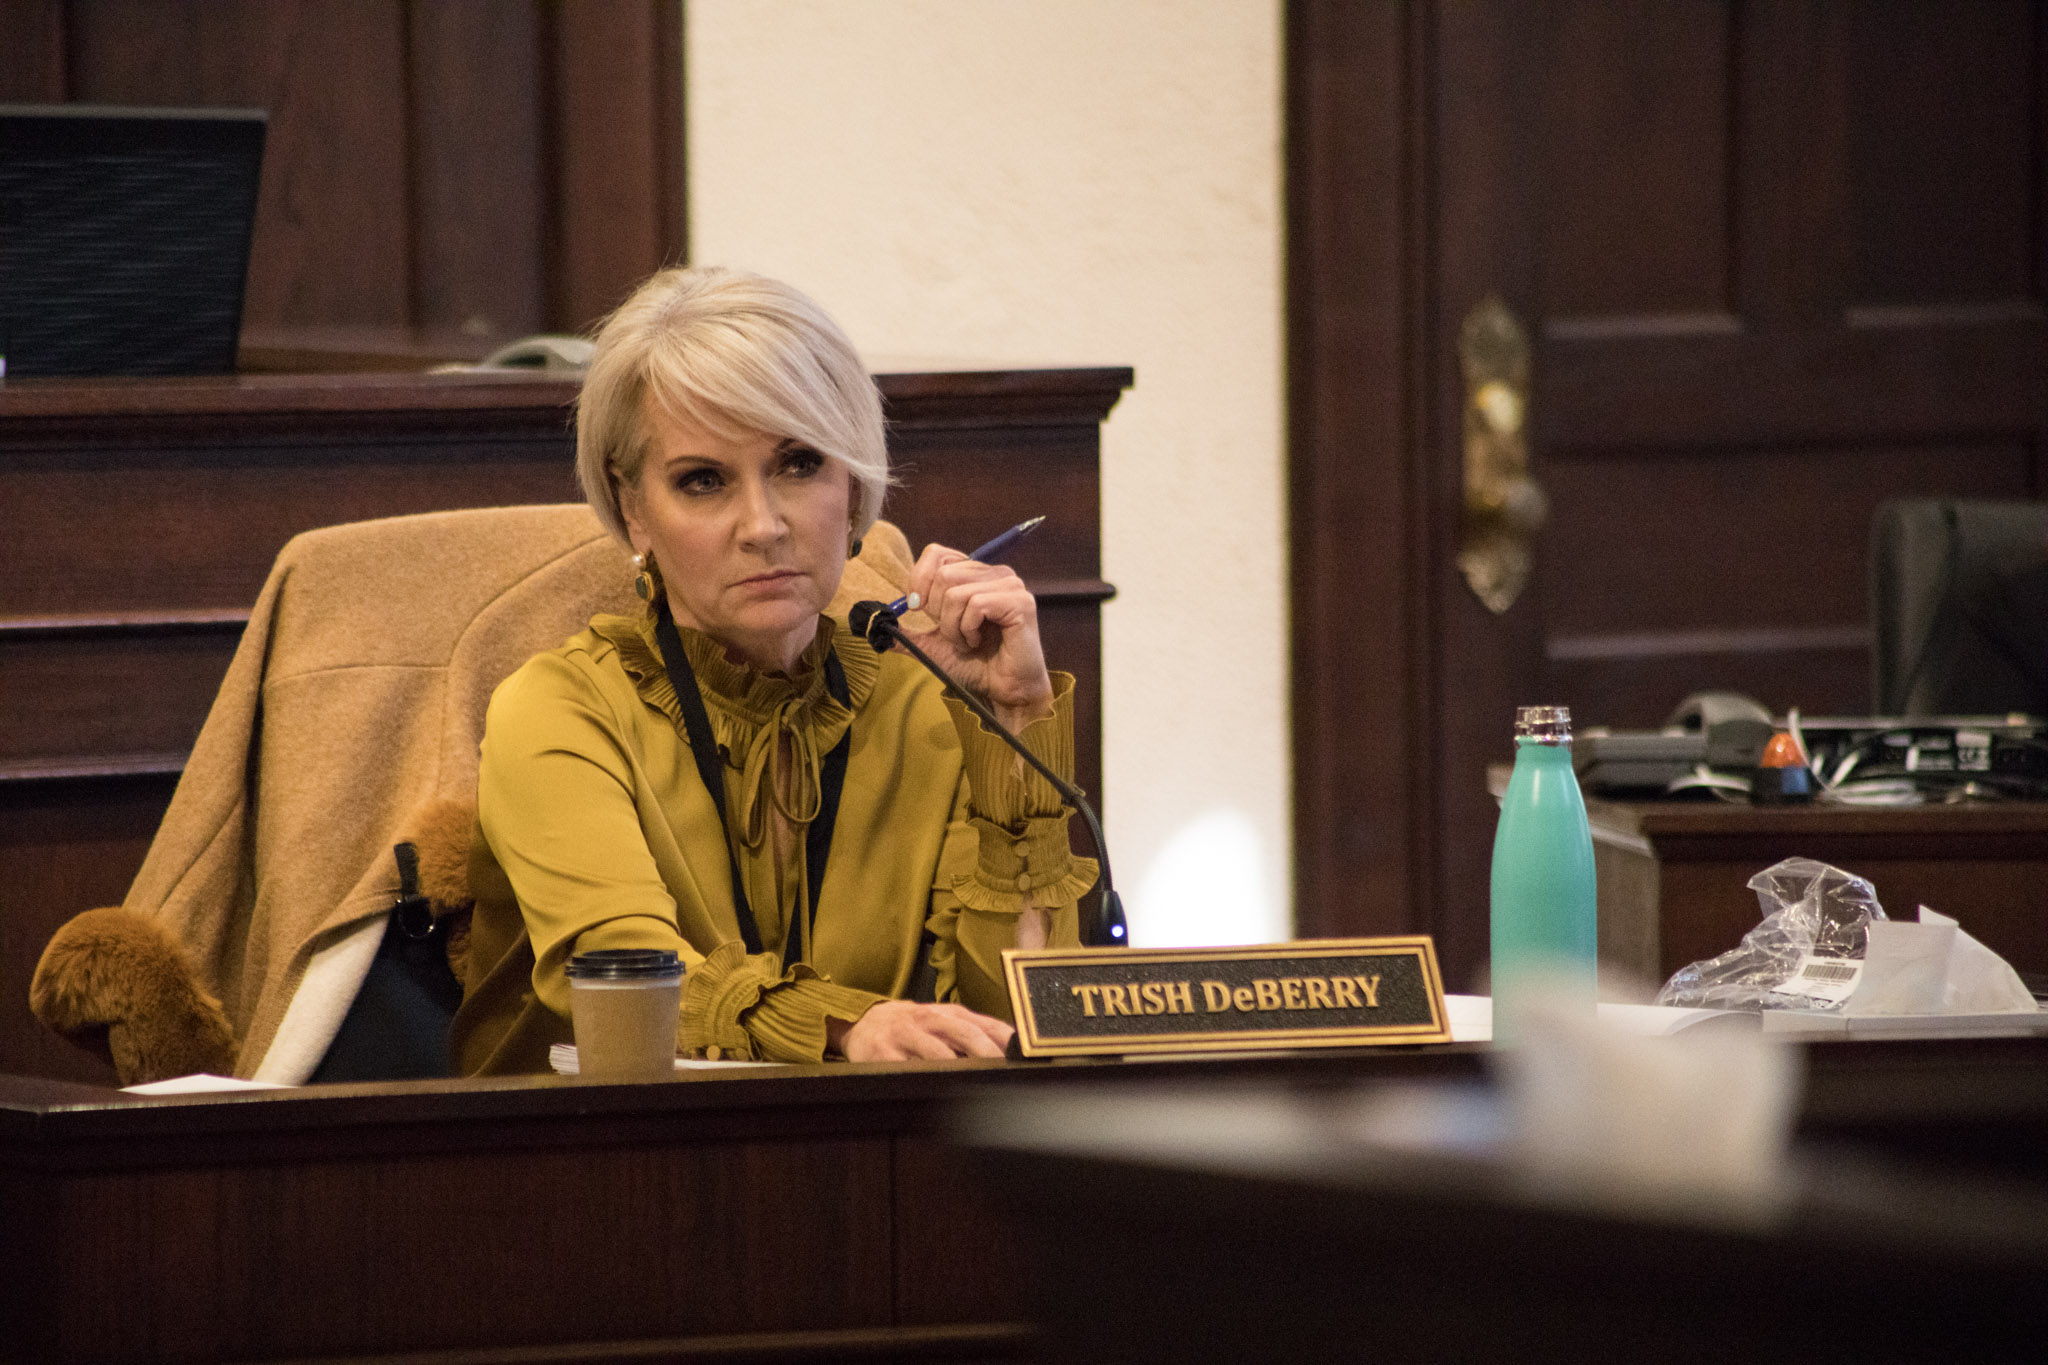 Wolff slams sheriff after boat benefactor provokes sexist attack on Commissioner DeBerry